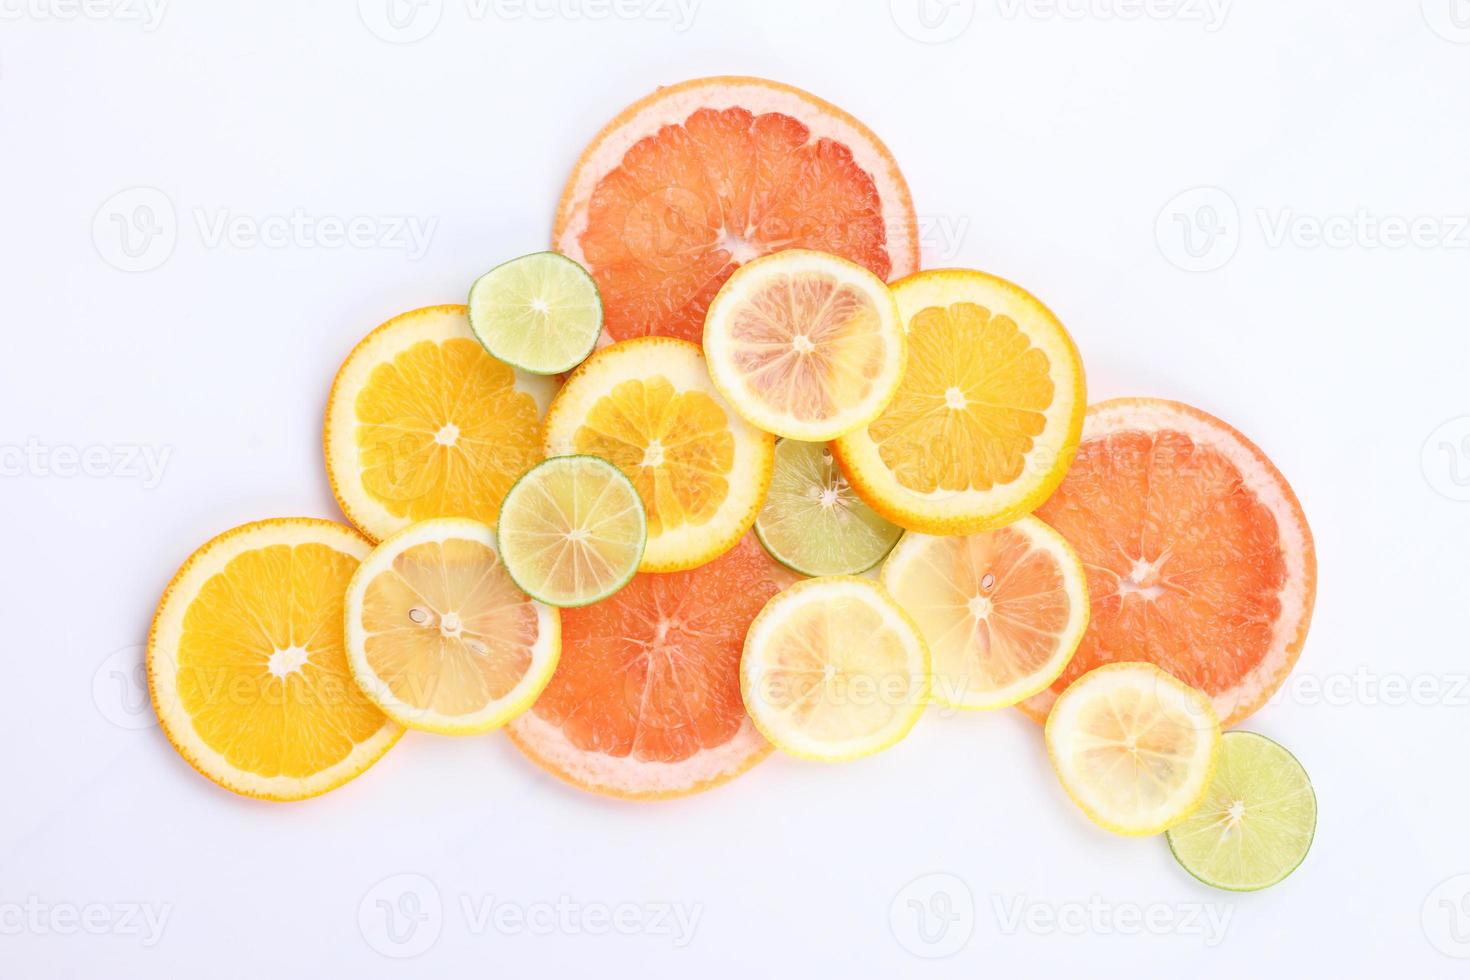 healthy food background, Citrus fruits photo